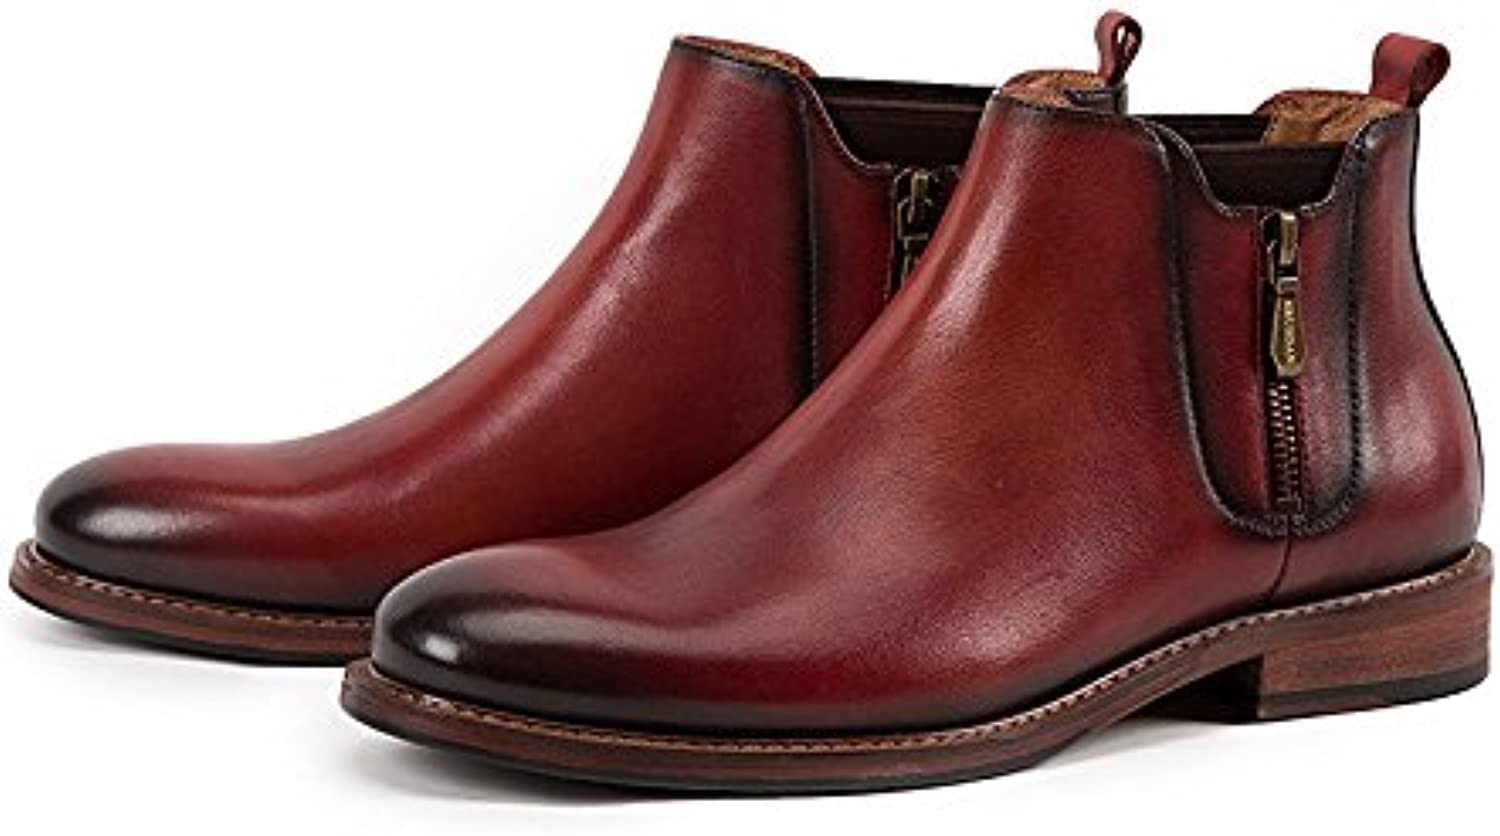 Británico Casual Chelsea Boots Botines Cremallera Lateral Hombres Martin Boots  -